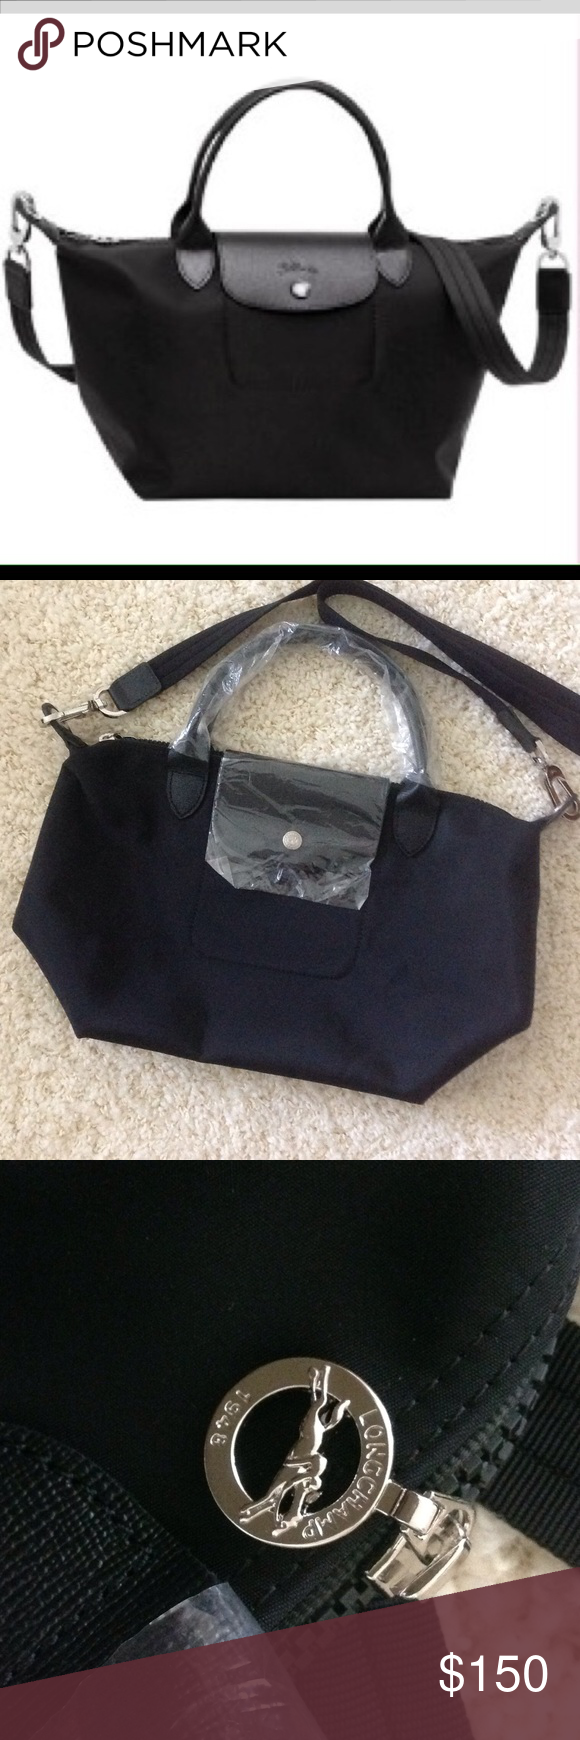 New Authentic Longchamp Black Neo Small Duffel Bag My Posh Picks Nwot Purchased From Another Posher Never Usedstill Has Plastic On Handles And Flap